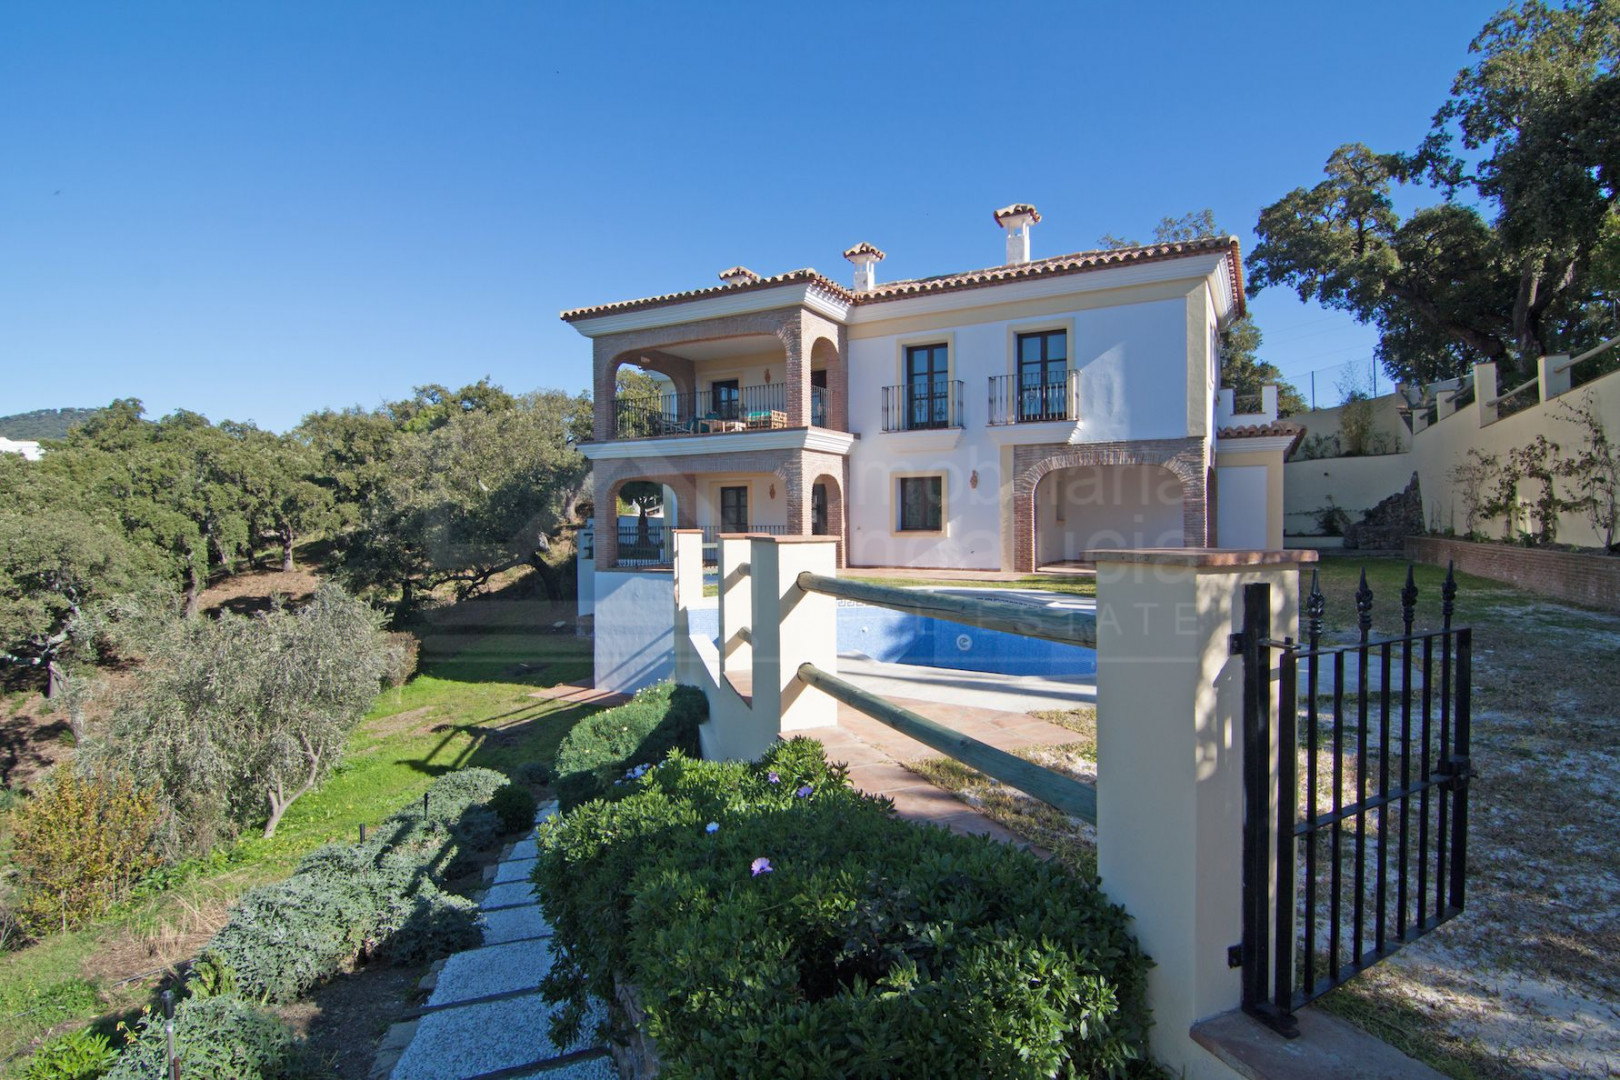 Brand new house for sale in beautiful mountainside location in La Celima Casares